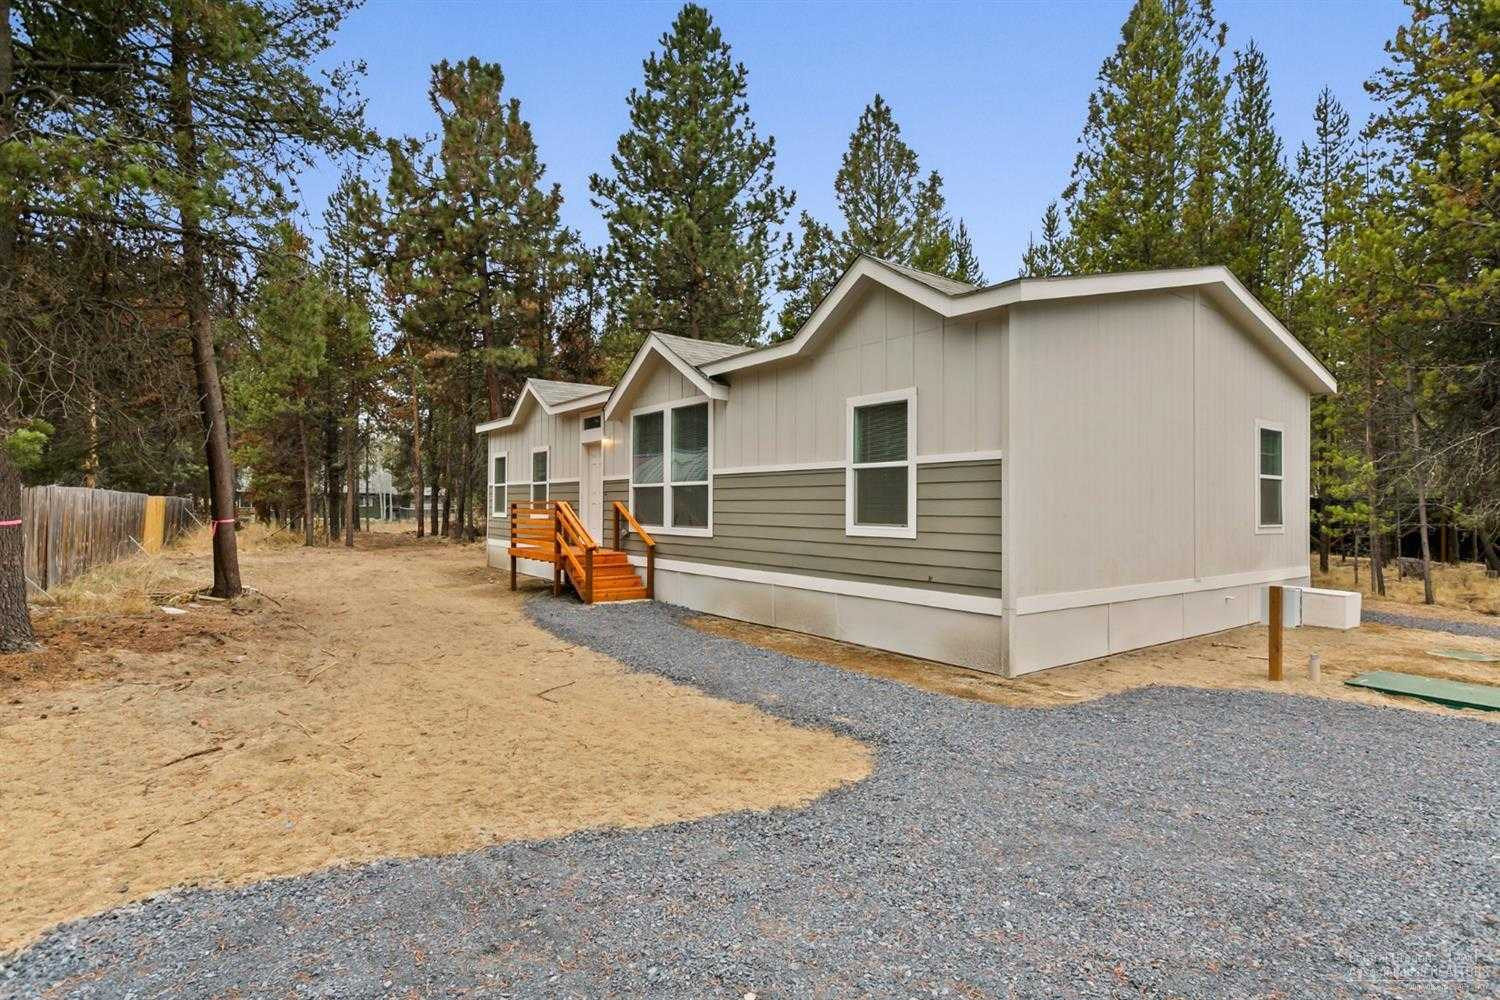 $252,400 - 3Br/2Ba -  for Sale in Bend